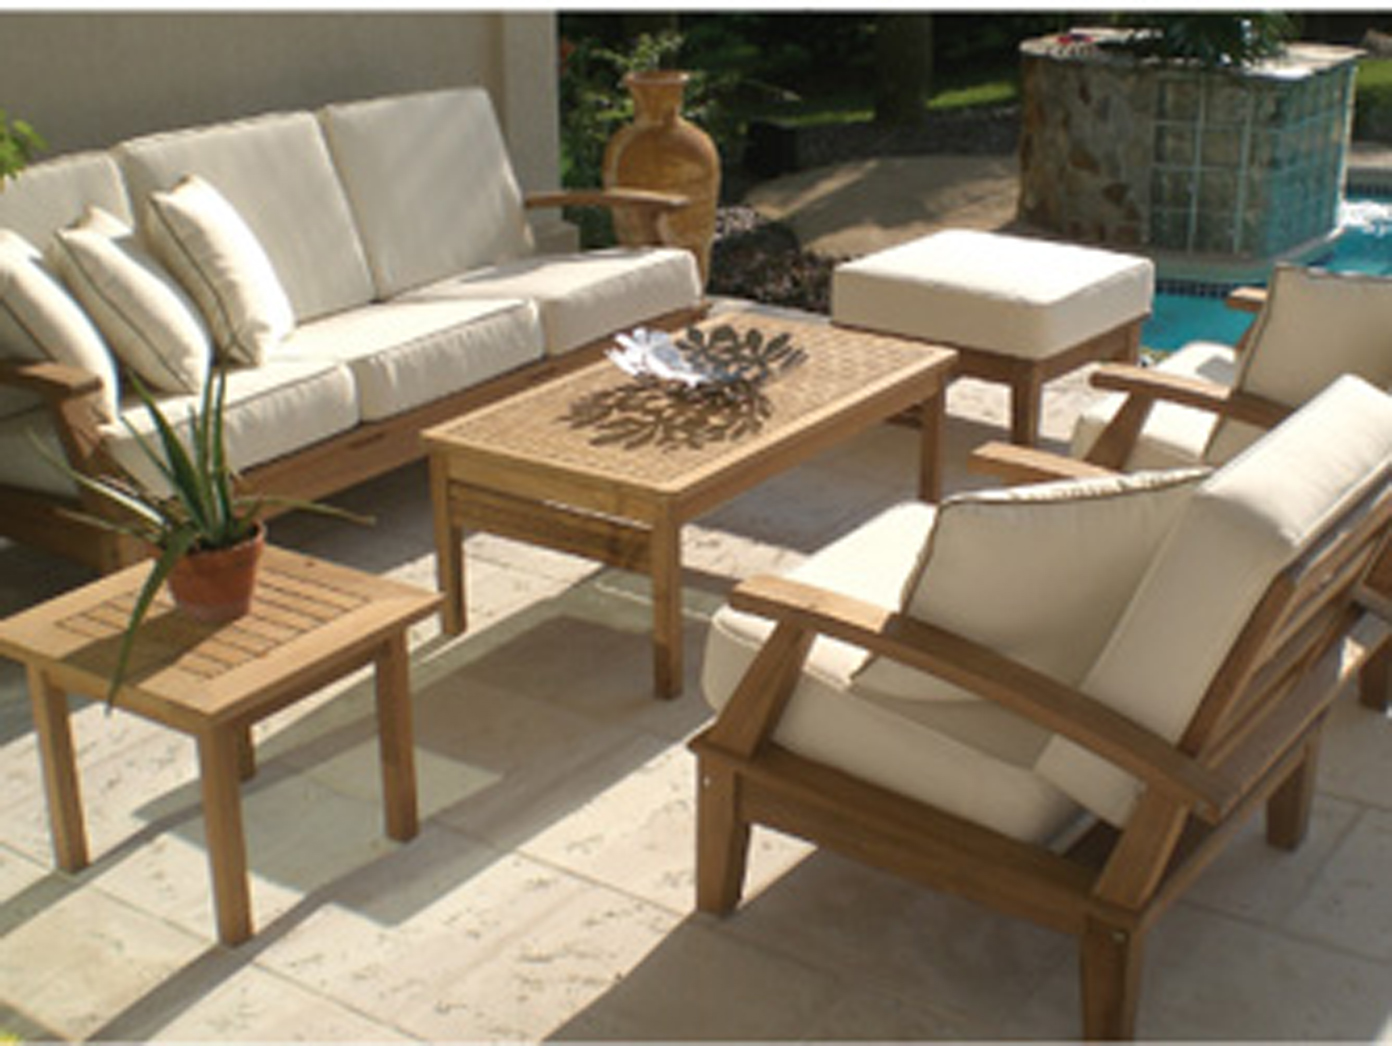 Teak Outdoor Furniture Miami